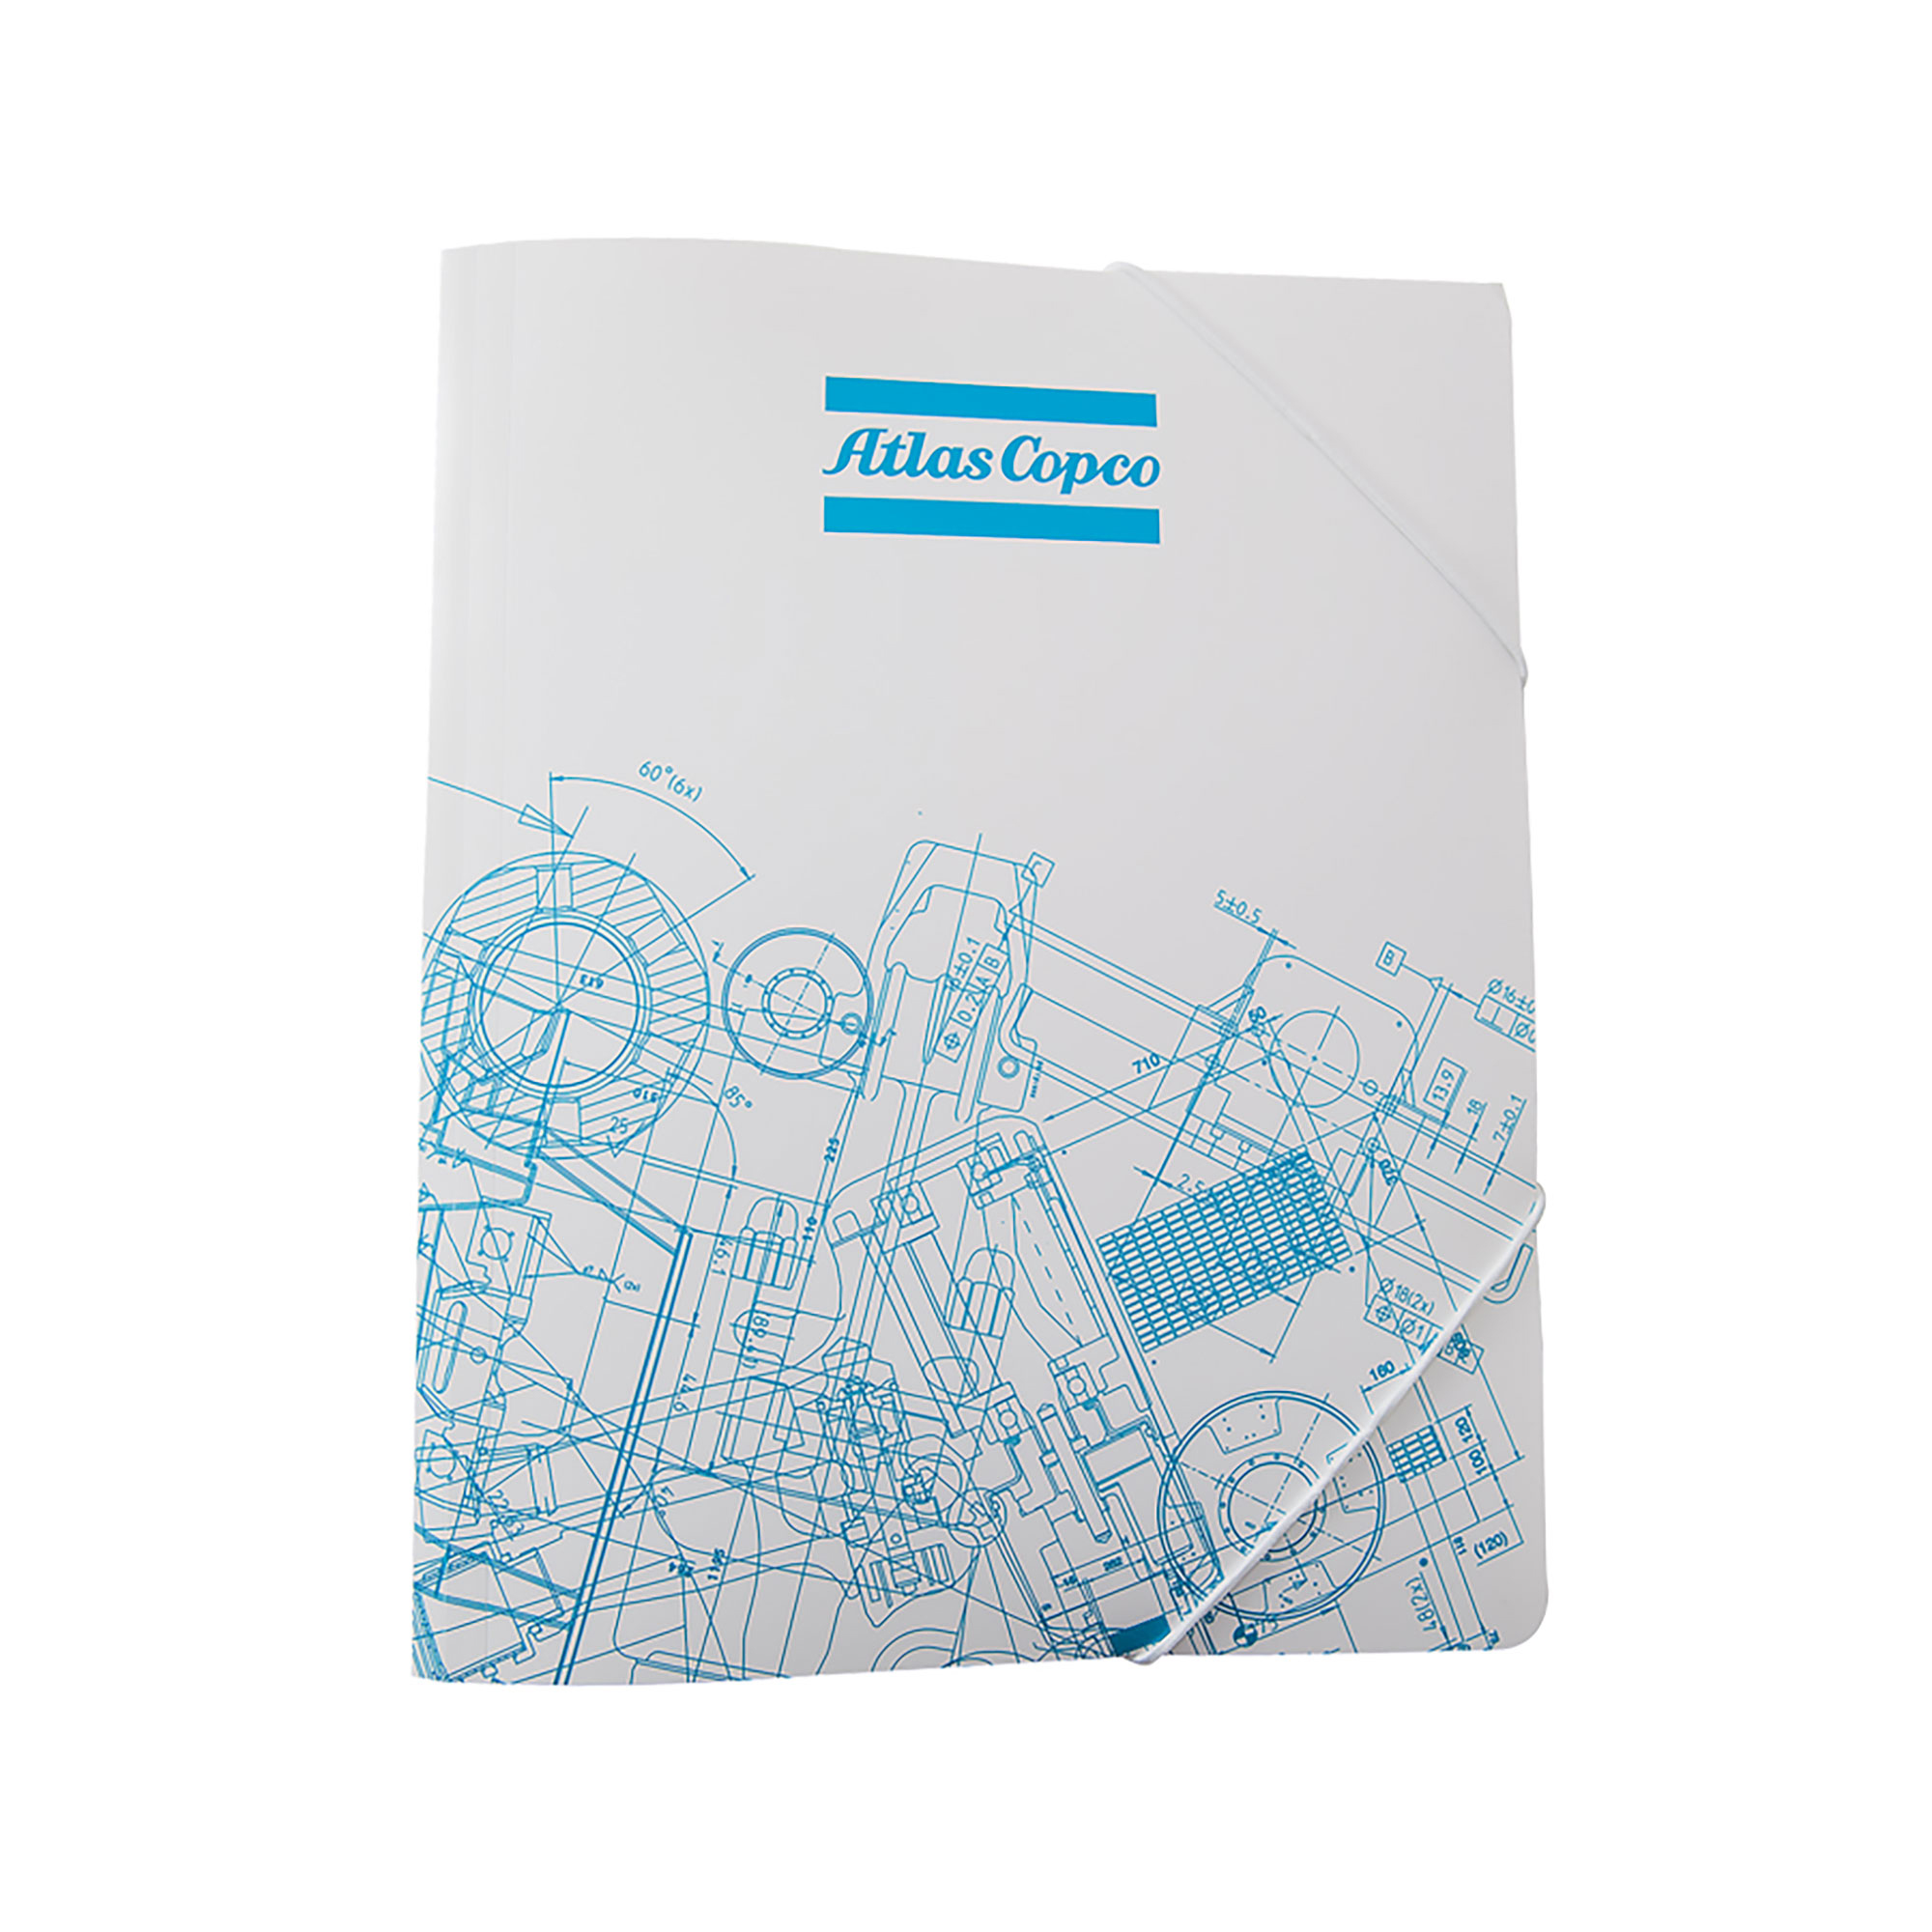 A4 conference folder in 0,6 mm white PP plastic. A string is used for keeping the folder closed. The BluePrint pattern is based on Atlas Copco´s key innovations. By merging original blueprints from all business areas, a unique graphic pattern has been created.